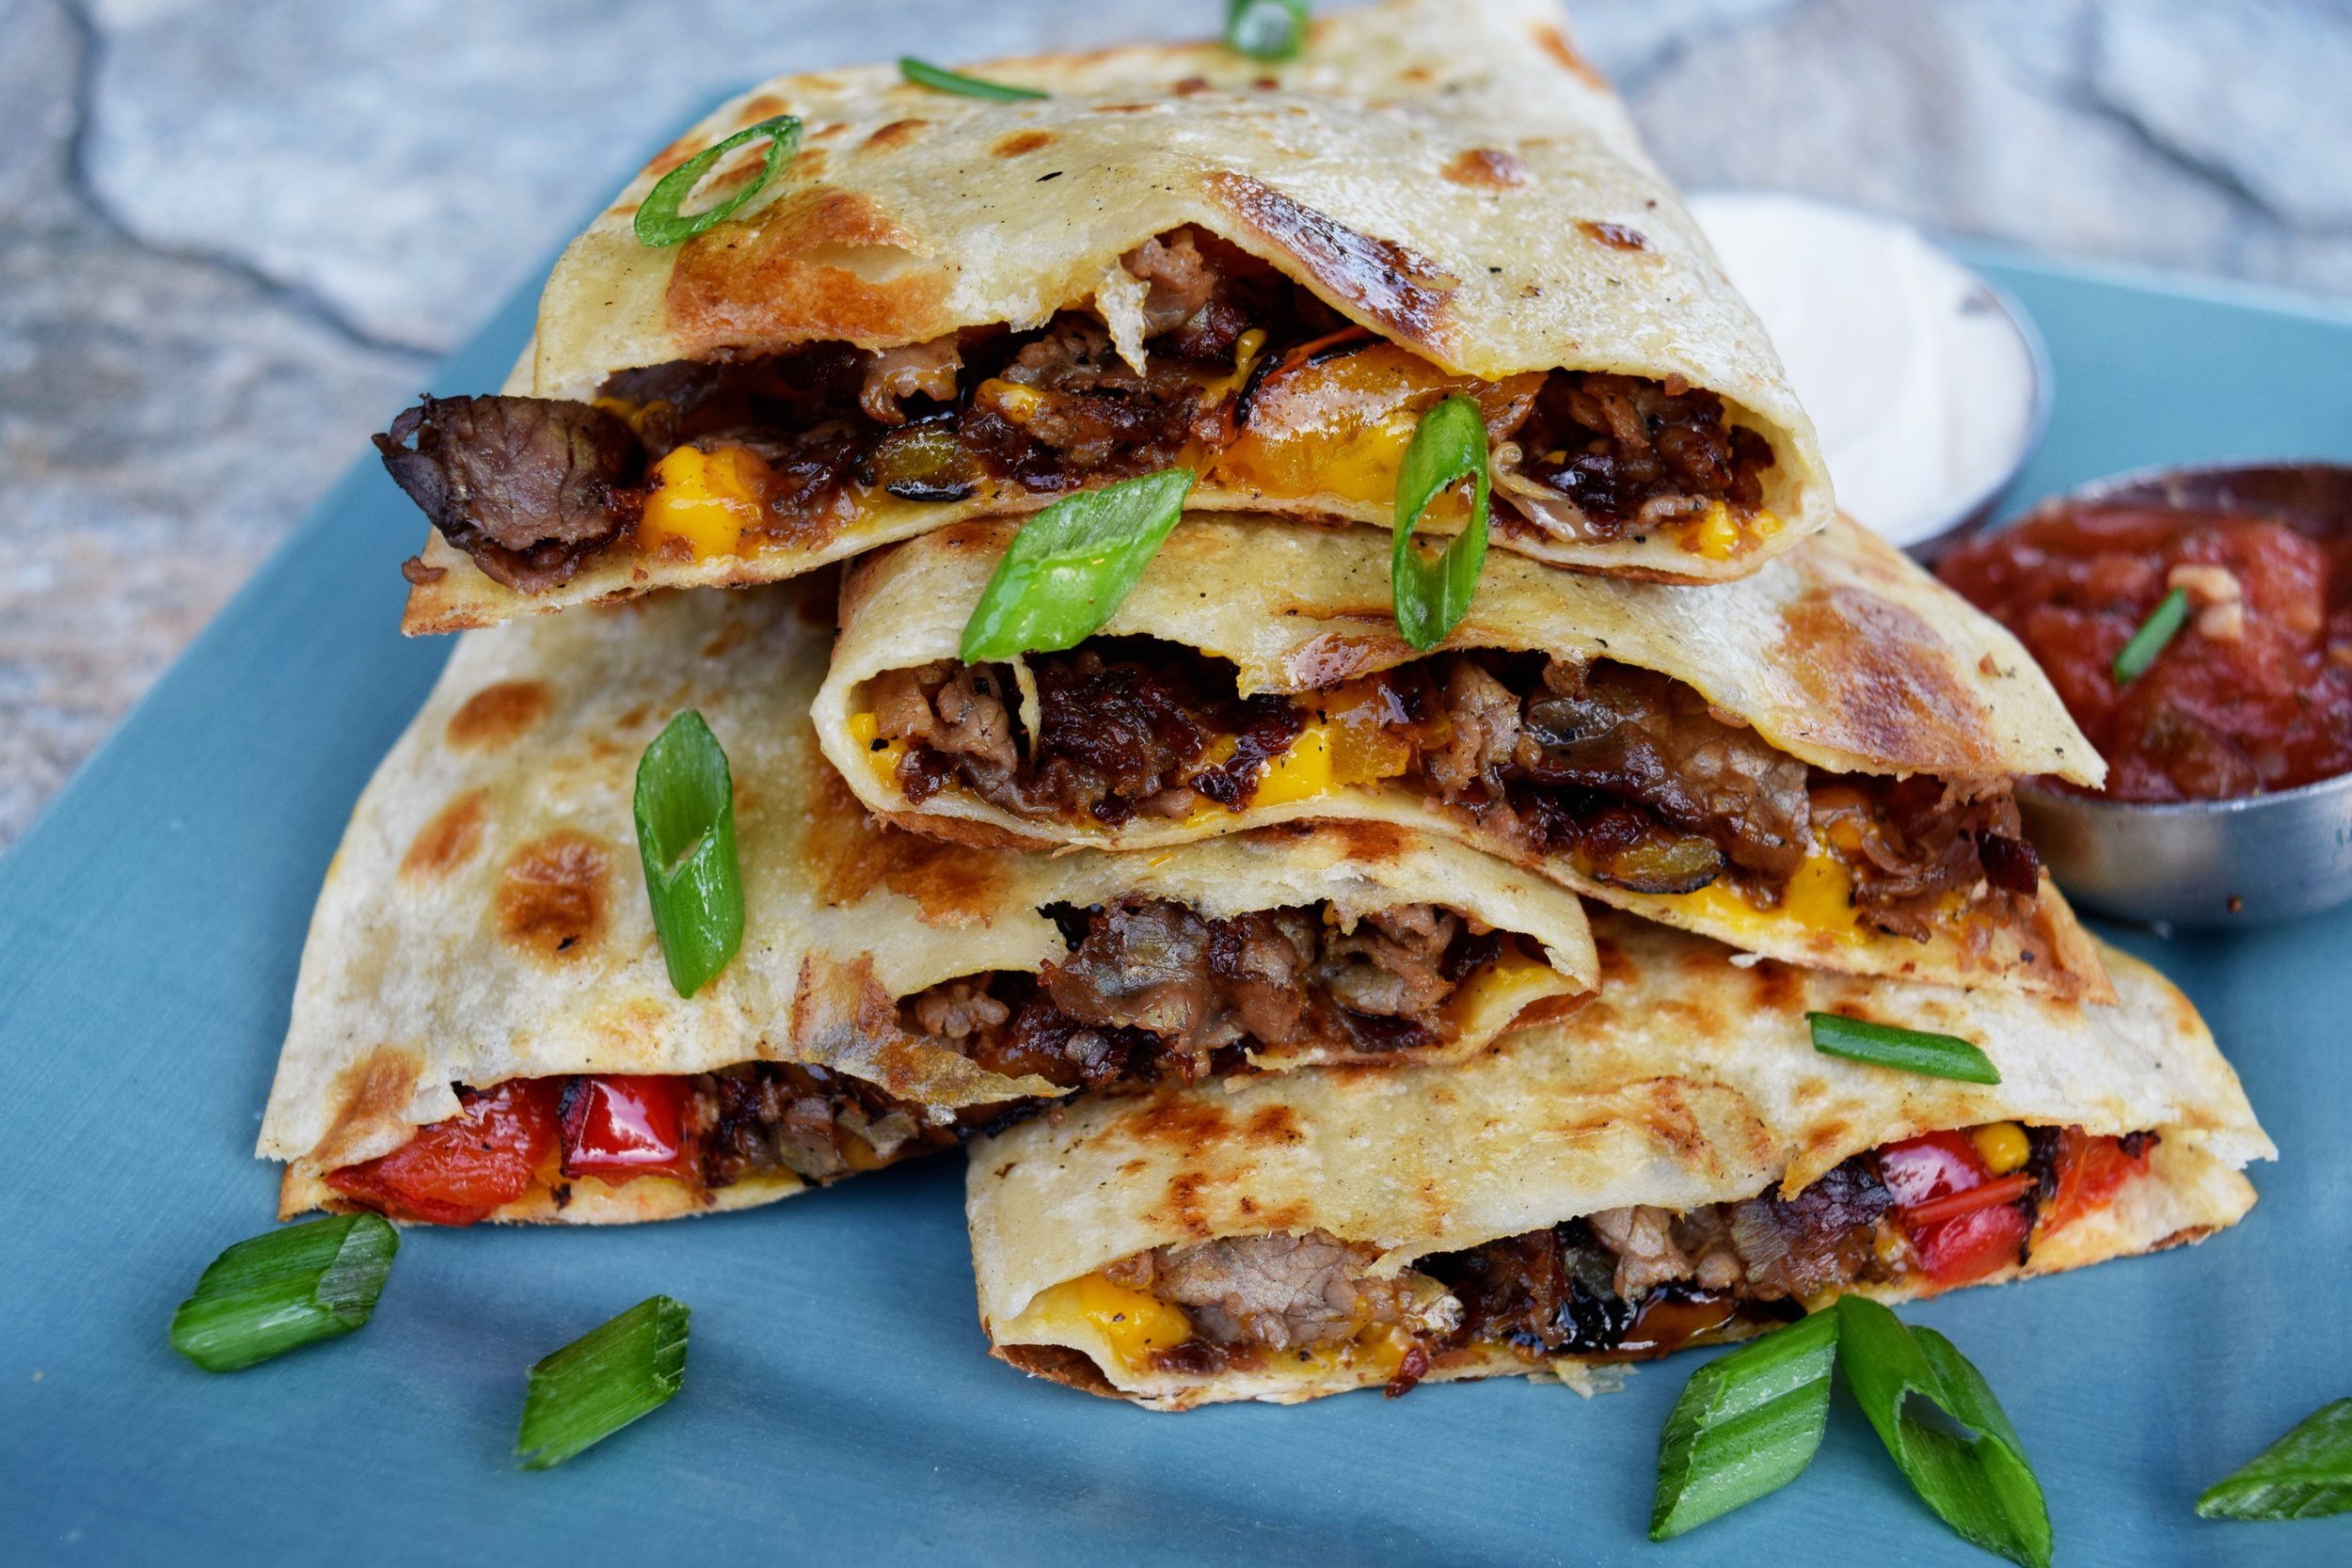 Cheesesteak Quesadillas